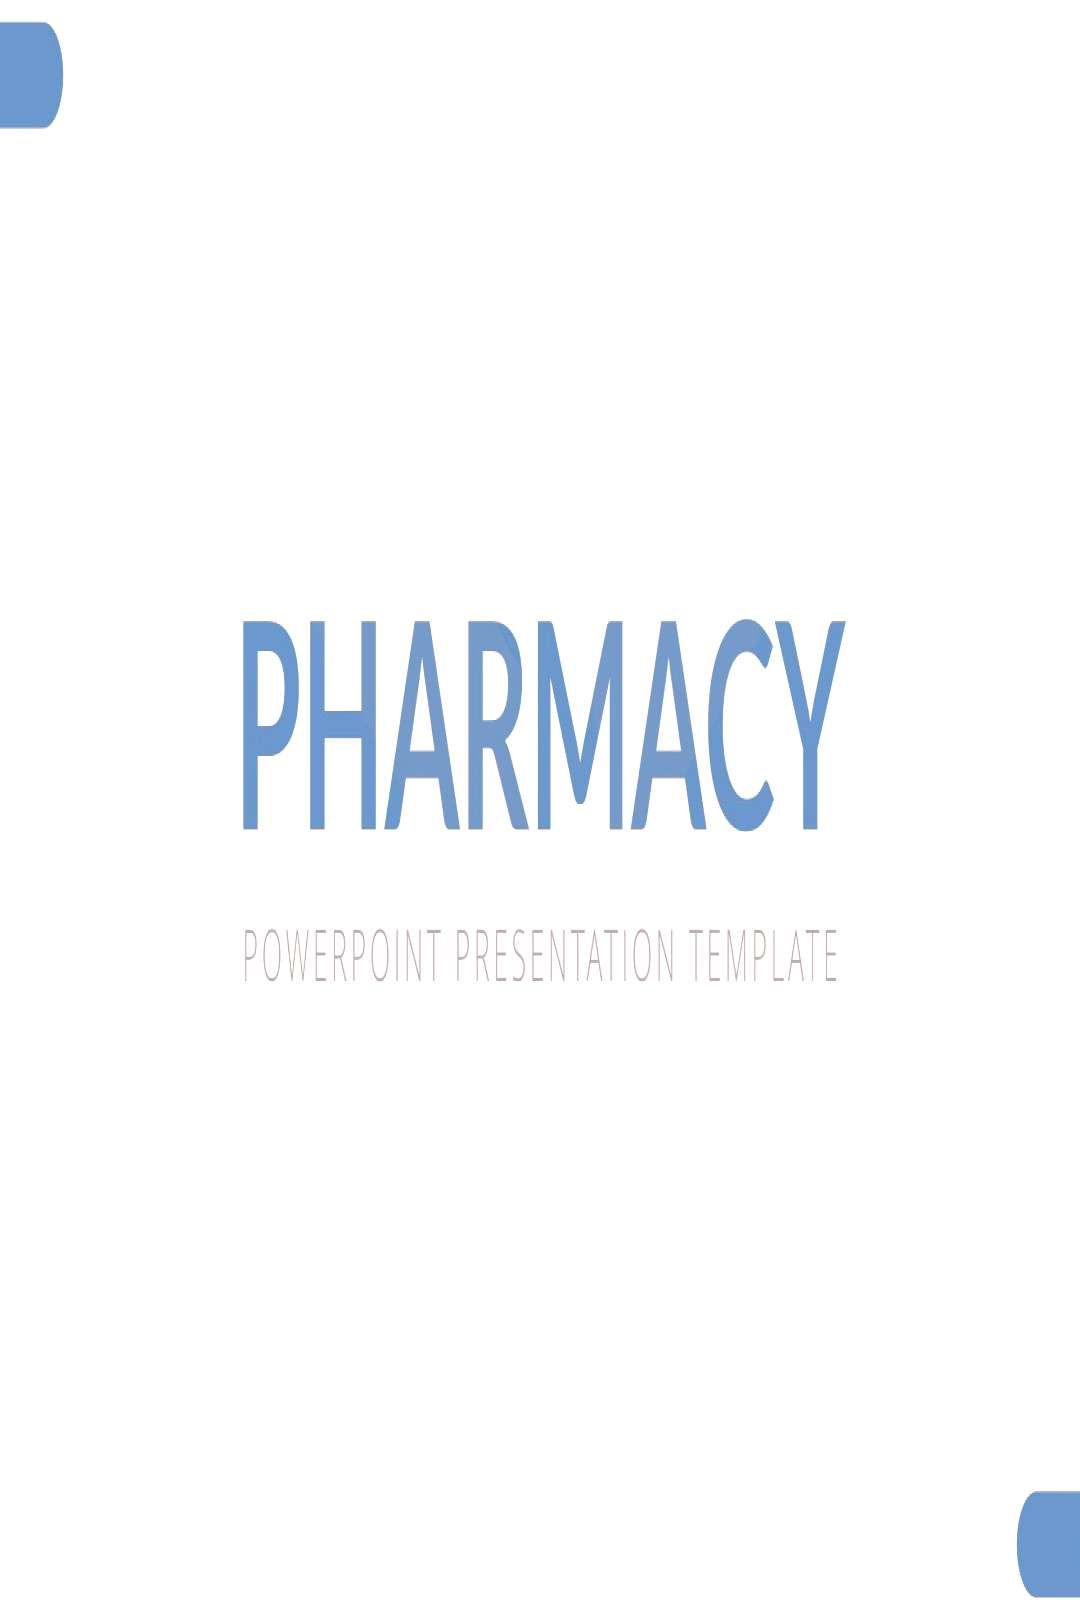 Pharmacy Keynote Presentation TemplateYou can find Pharmacy and more on our websitePharmacy Keynote Presentation Template